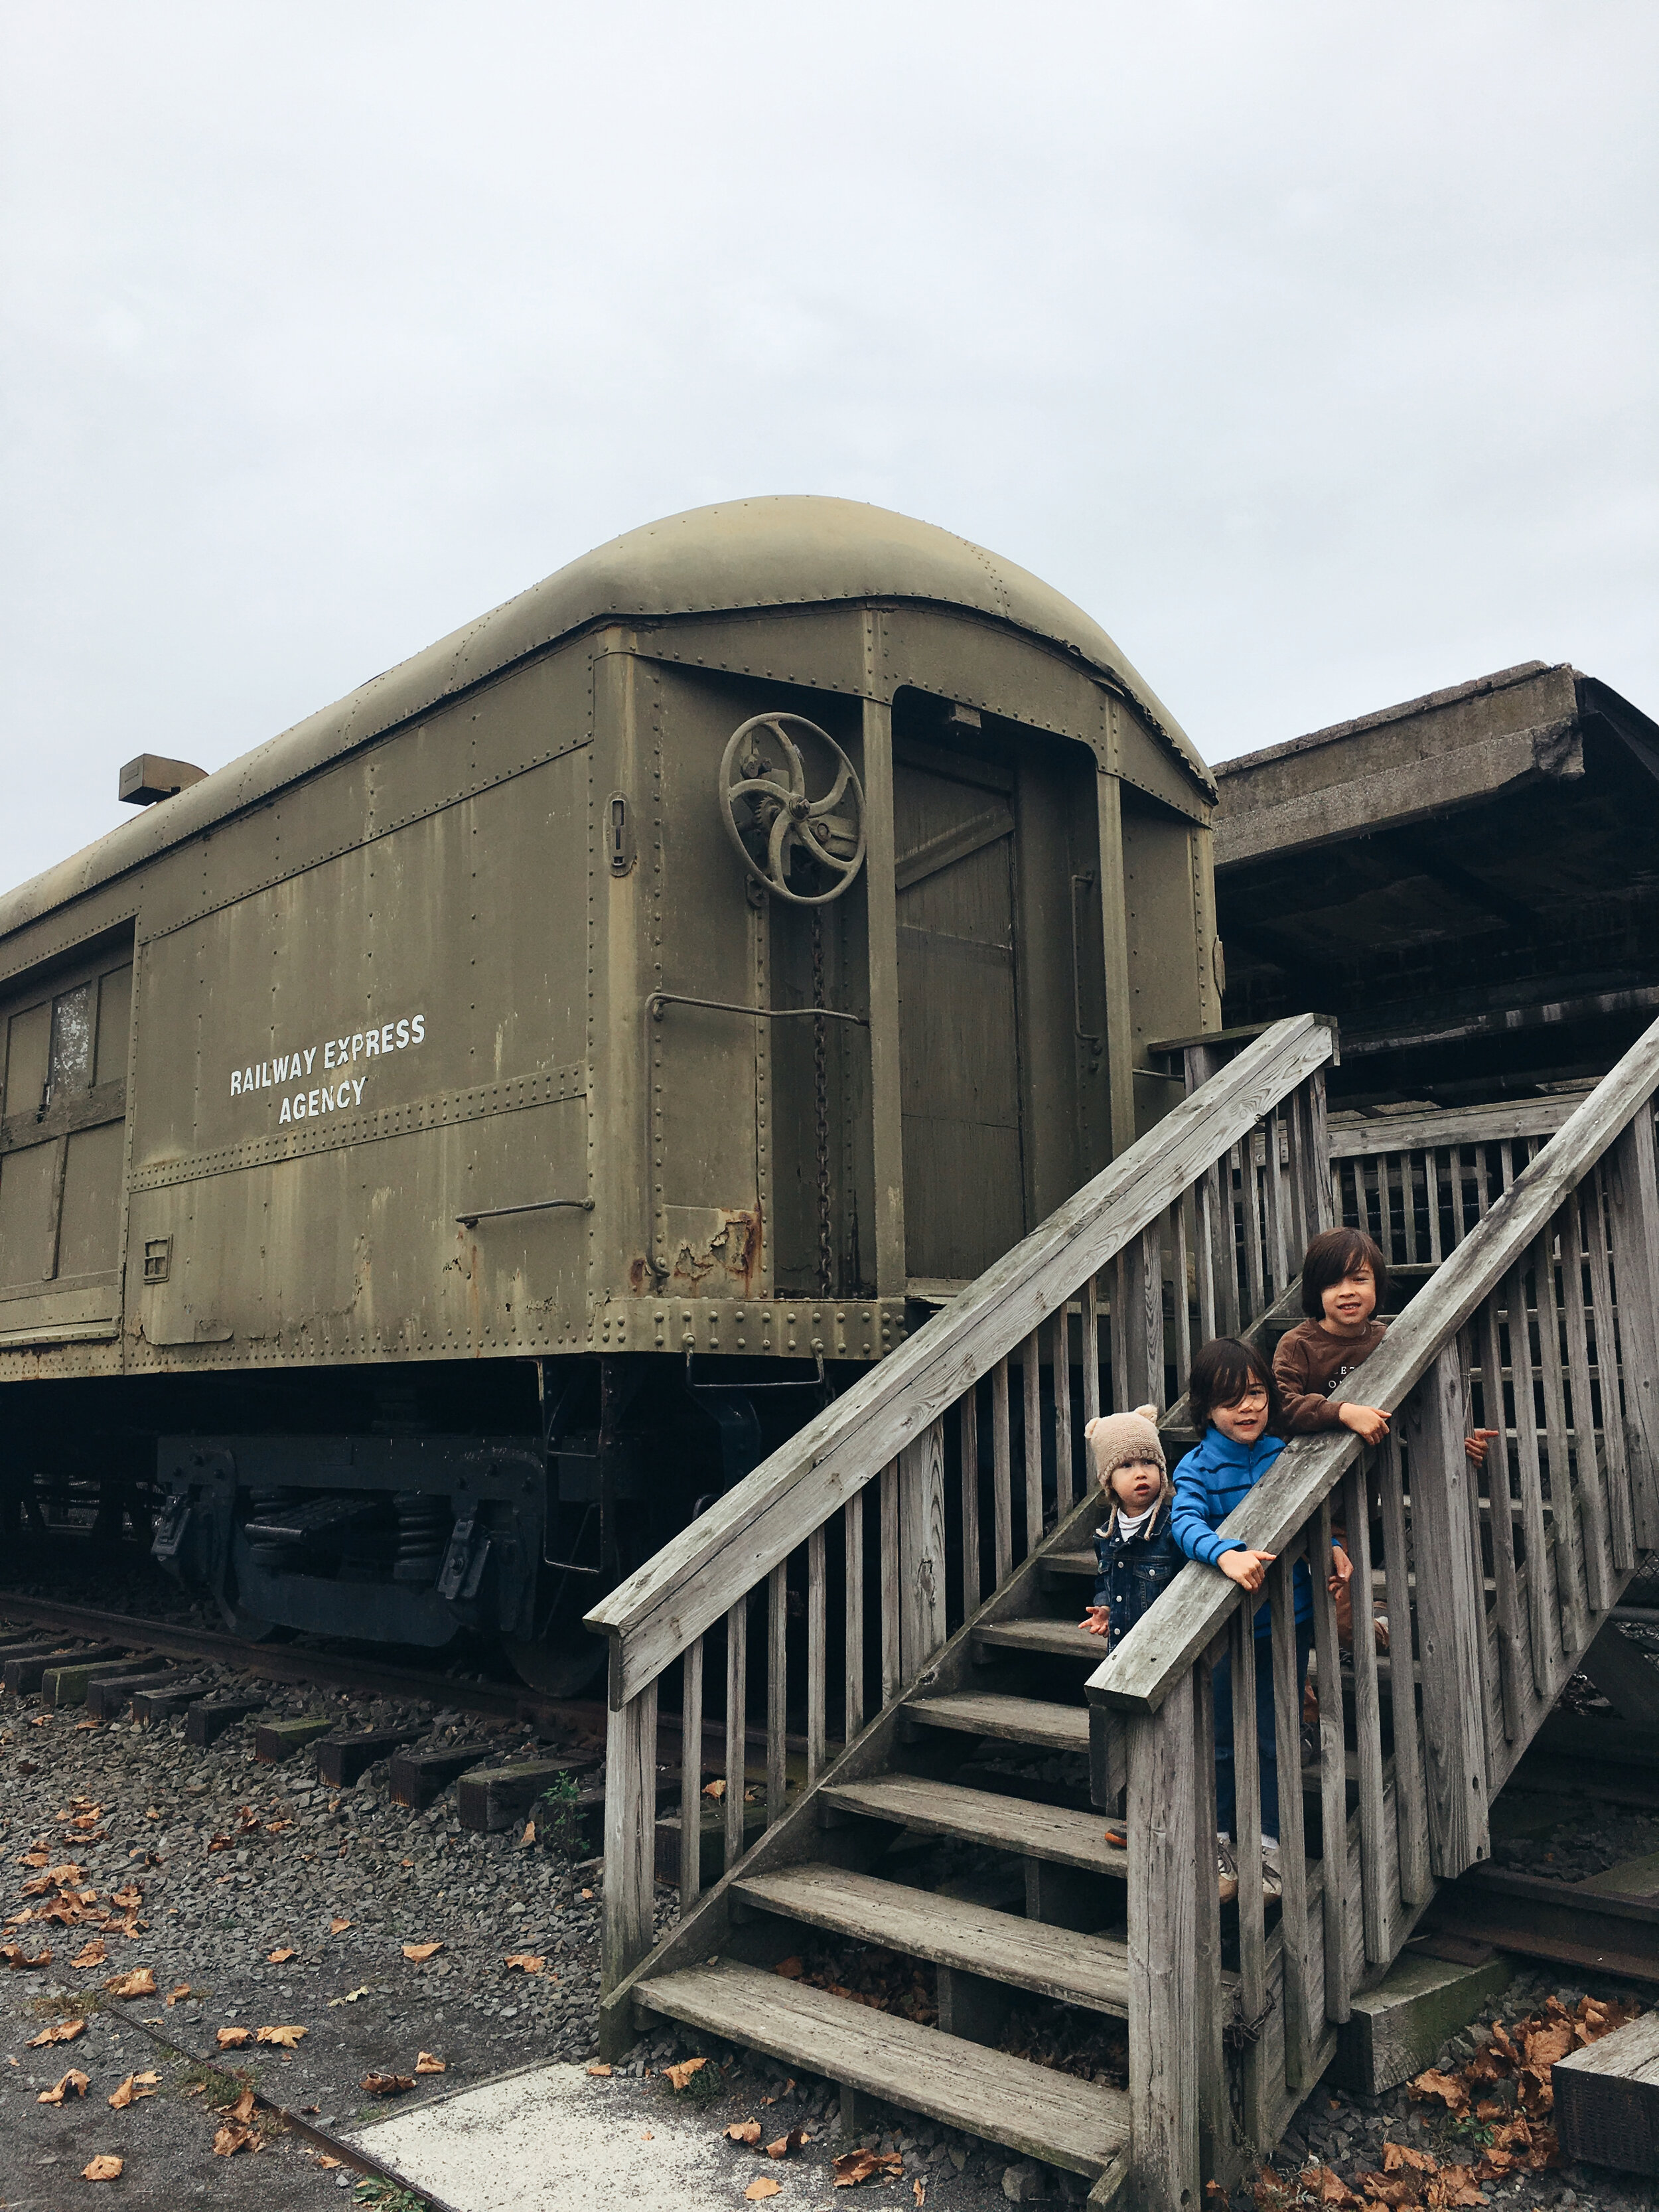 The historic Central Railroad of New Jersey Terminal at Liberty State Park (New Jersey)